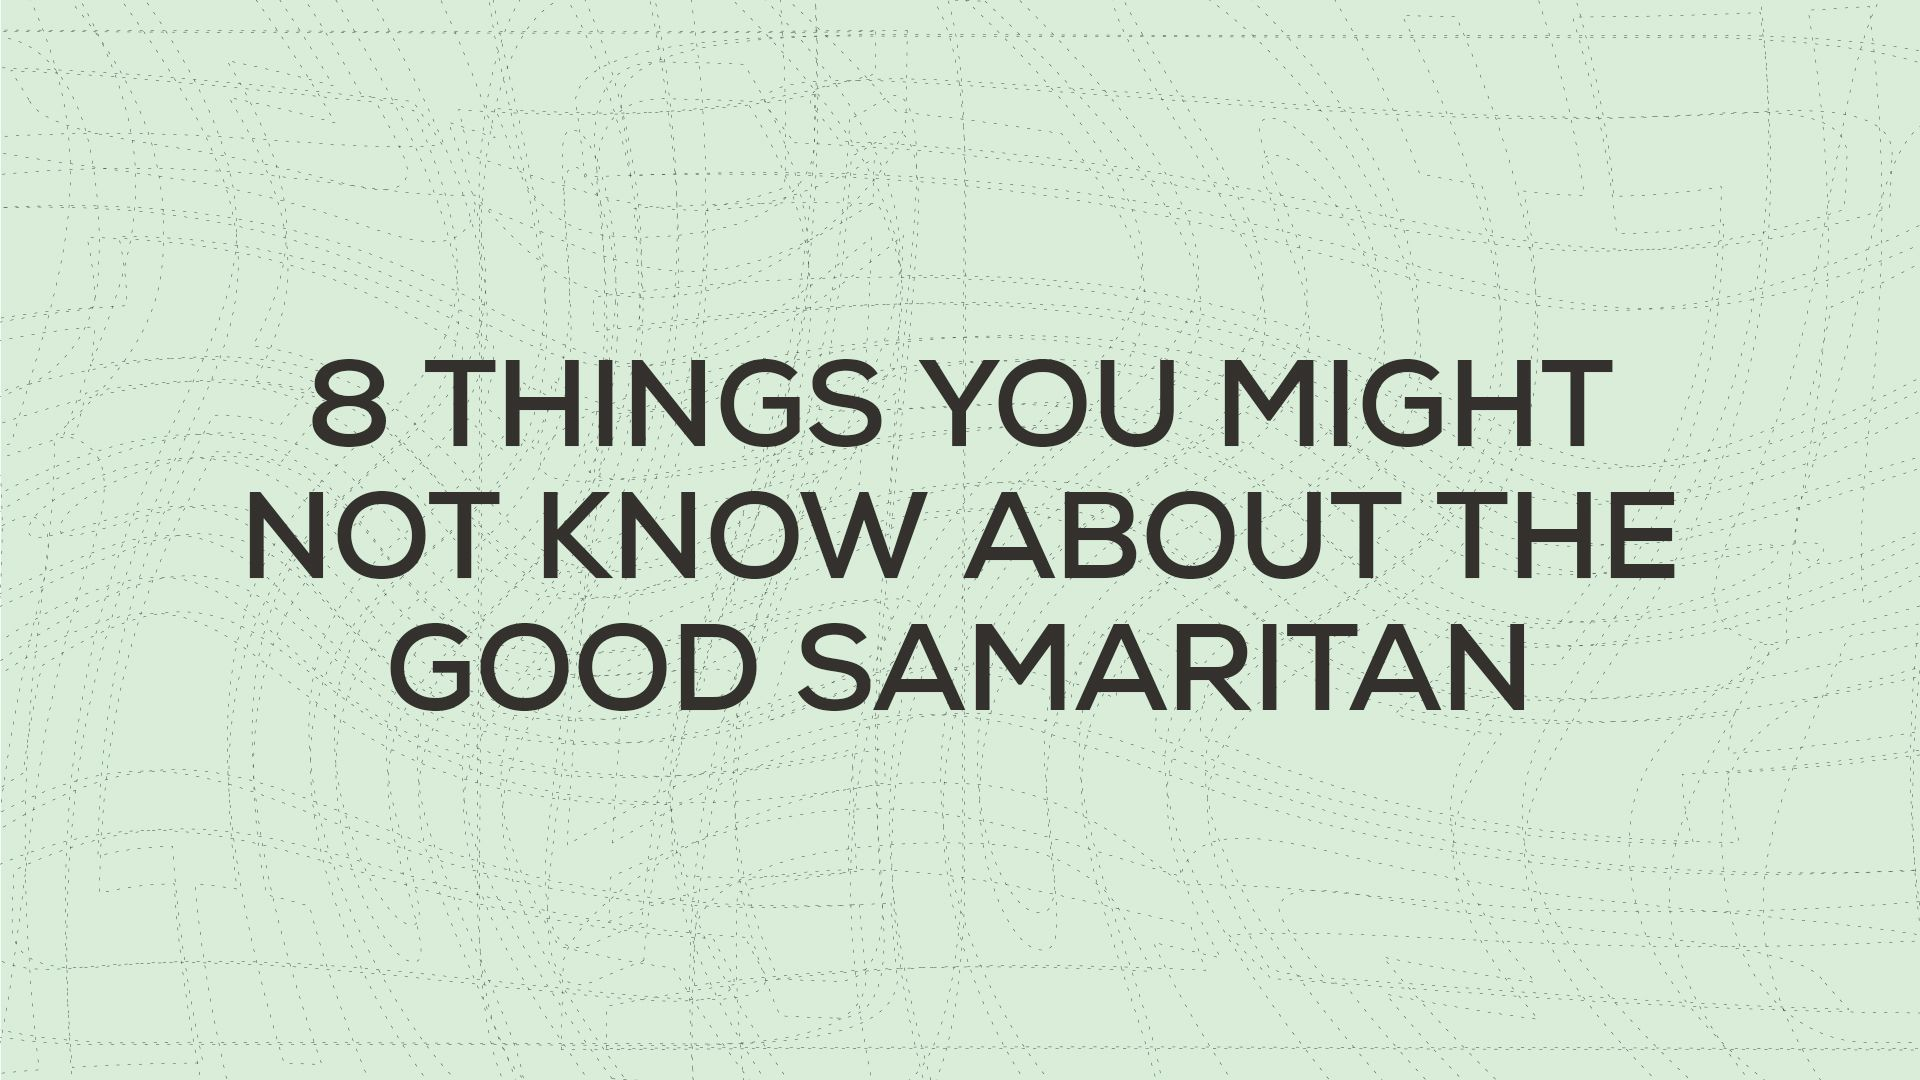 8 Things You Might Not Know About the Good Samaritan Hero Image